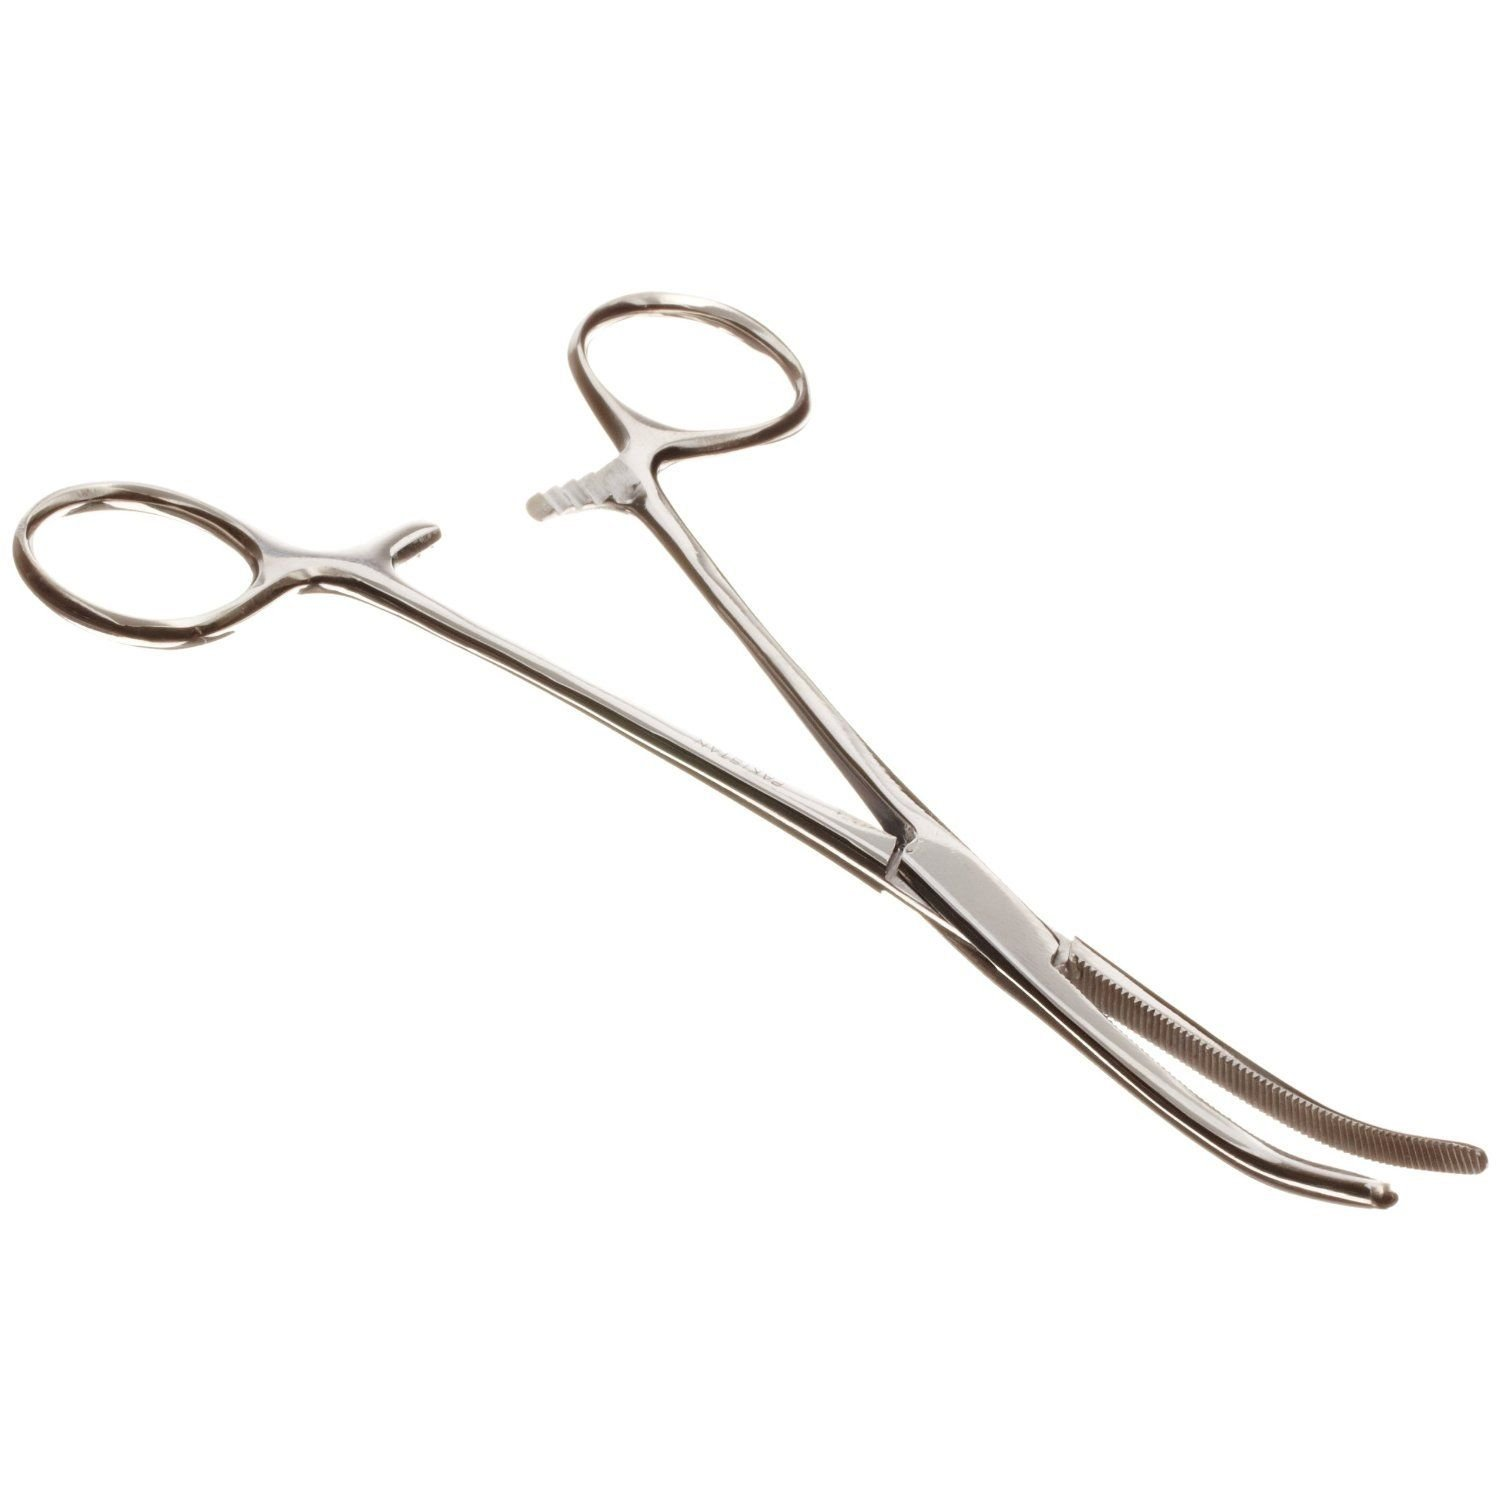 Set of 6 Pairs 8'' Curved Hemostat Forceps Locking Clamps - Stainless Steel